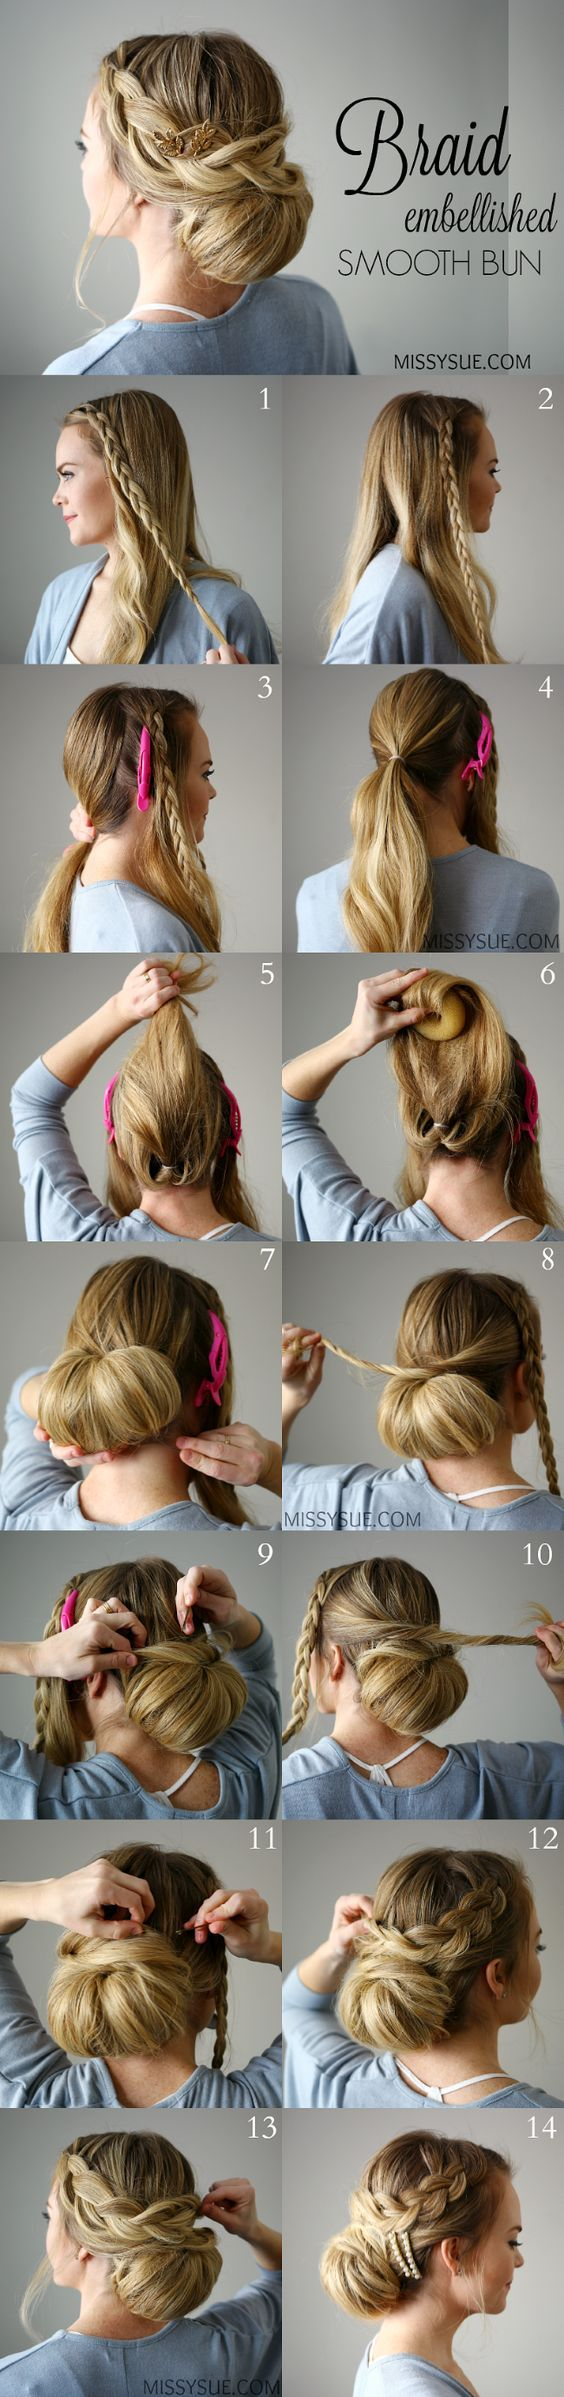 best kunst images on pinterest bedroom ideas braided buns and